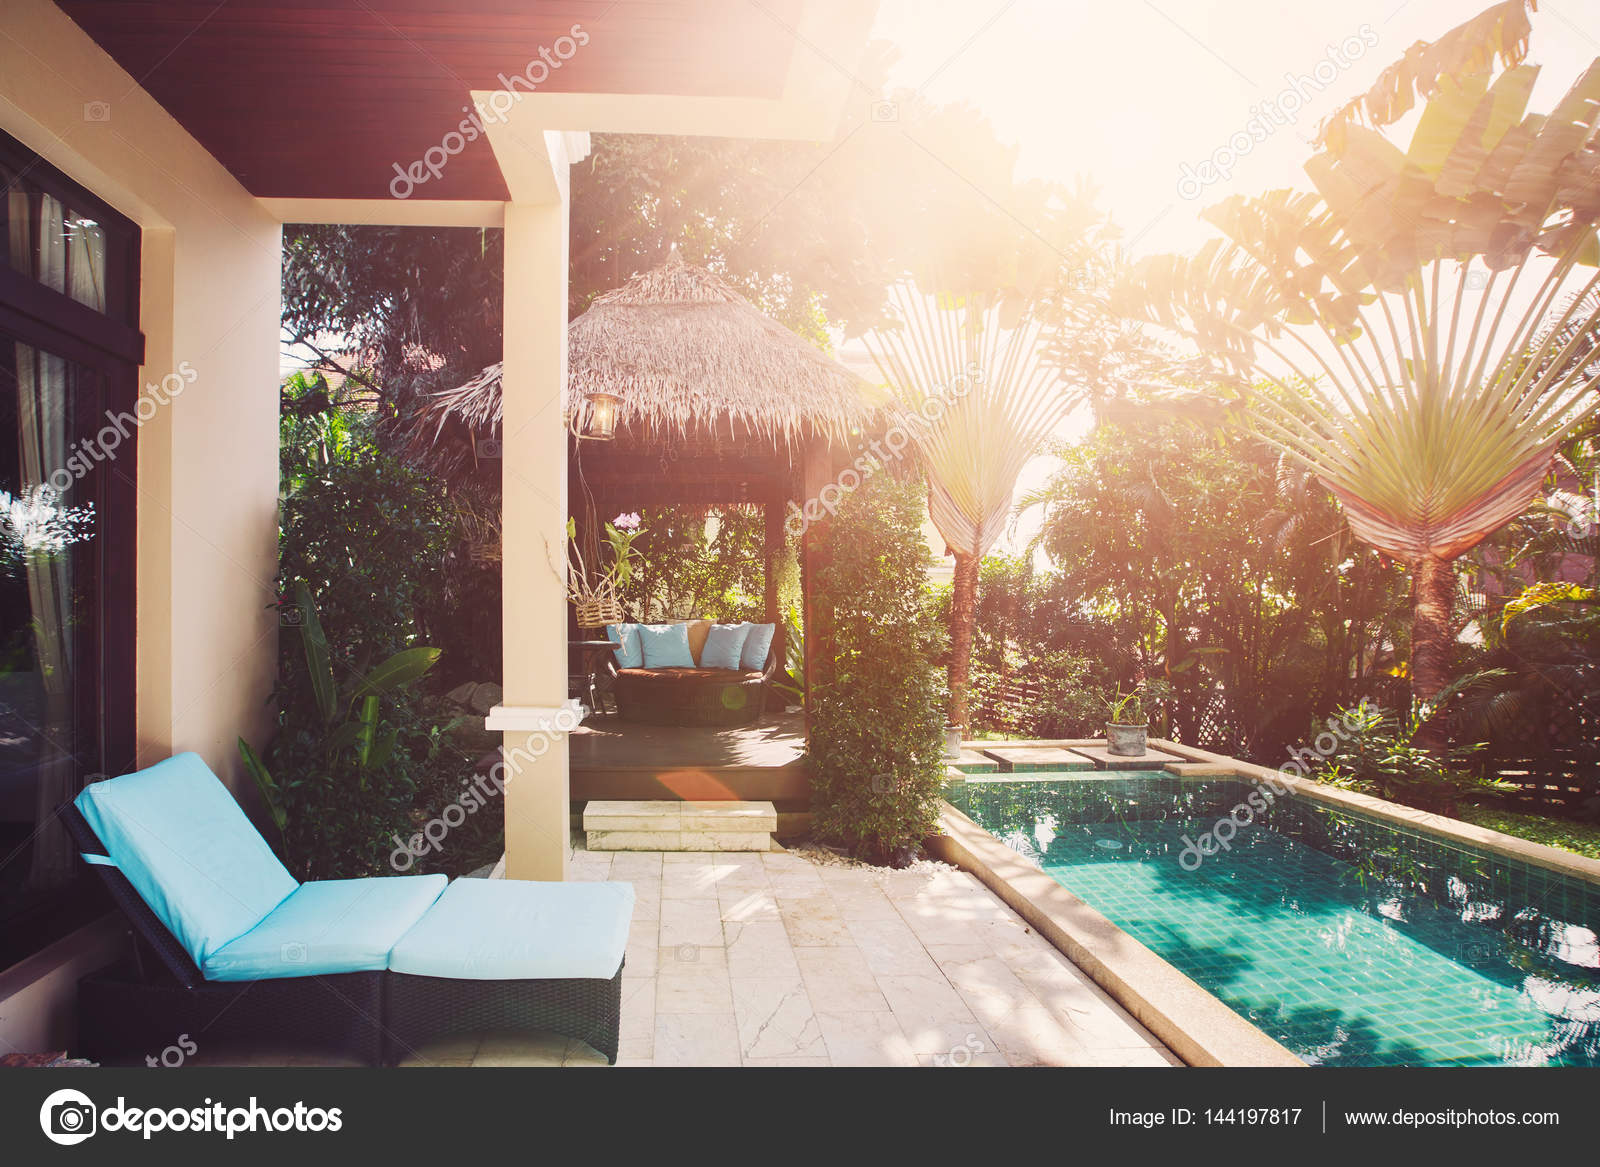 Luxusvilla innen  Luxus-Villa mit Pool-Interieur — Stockfoto © AnnaTamila #144197817